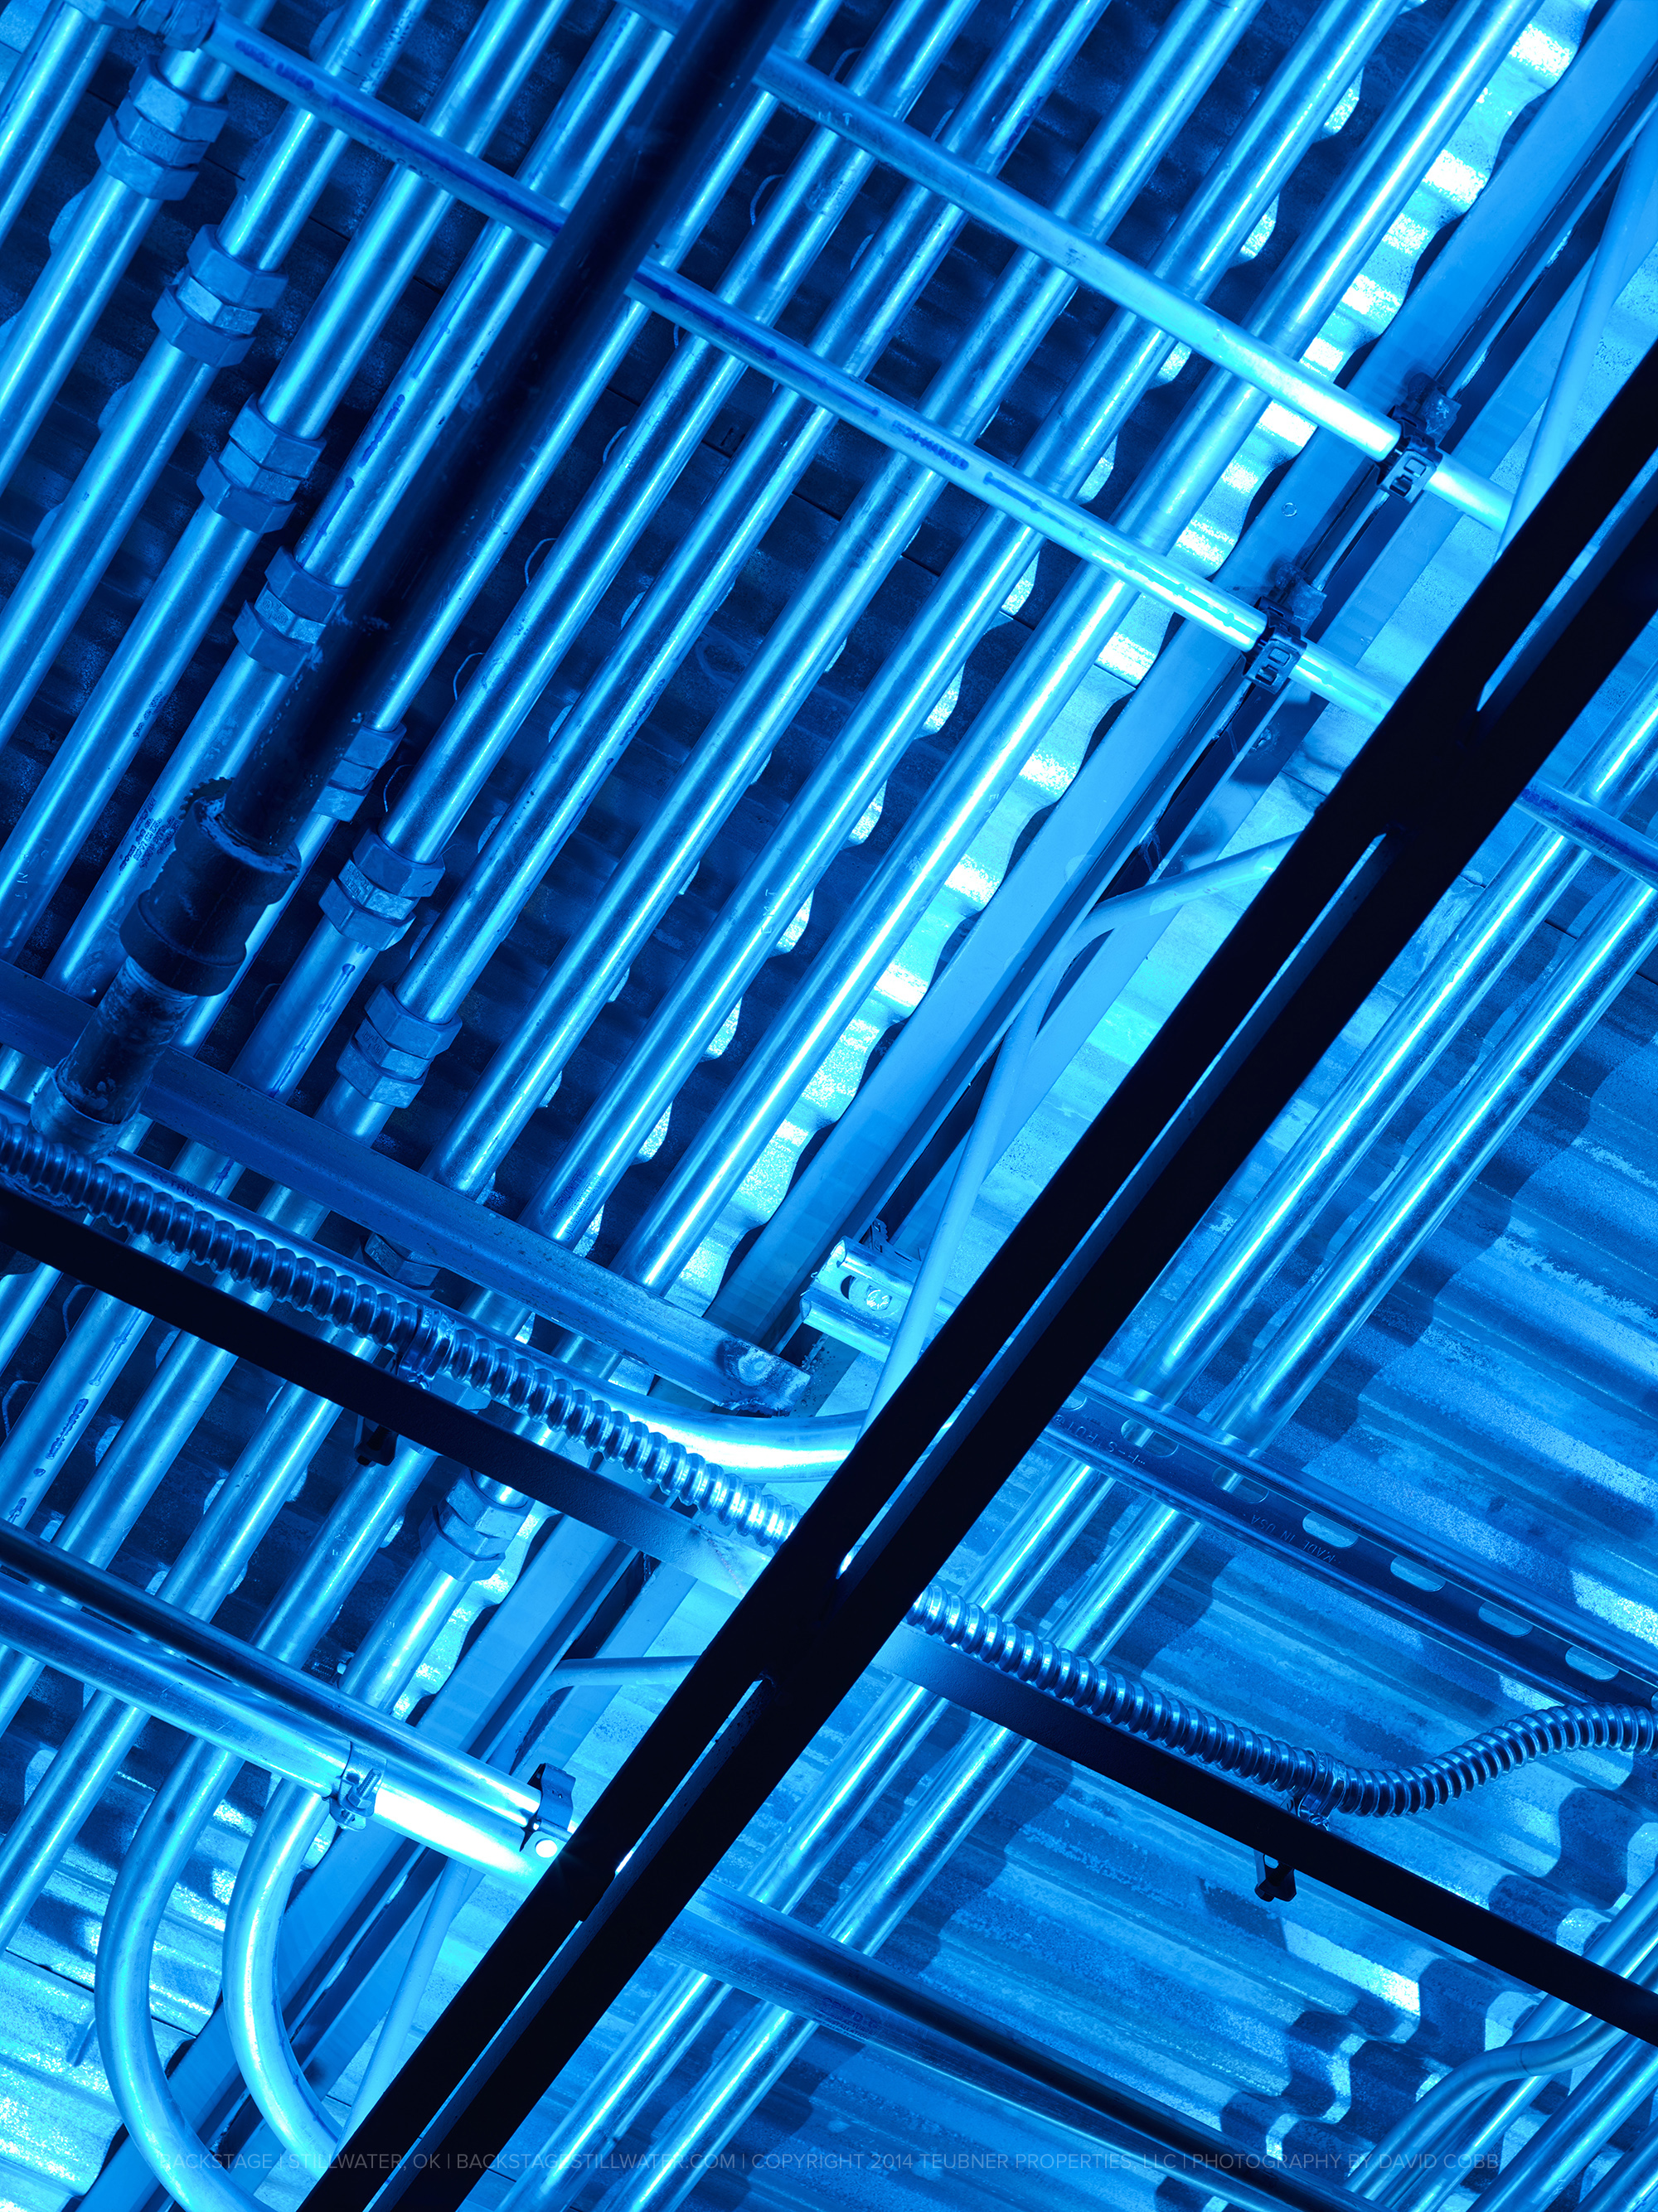 72-BackStage Ceiling Blue32.jpg